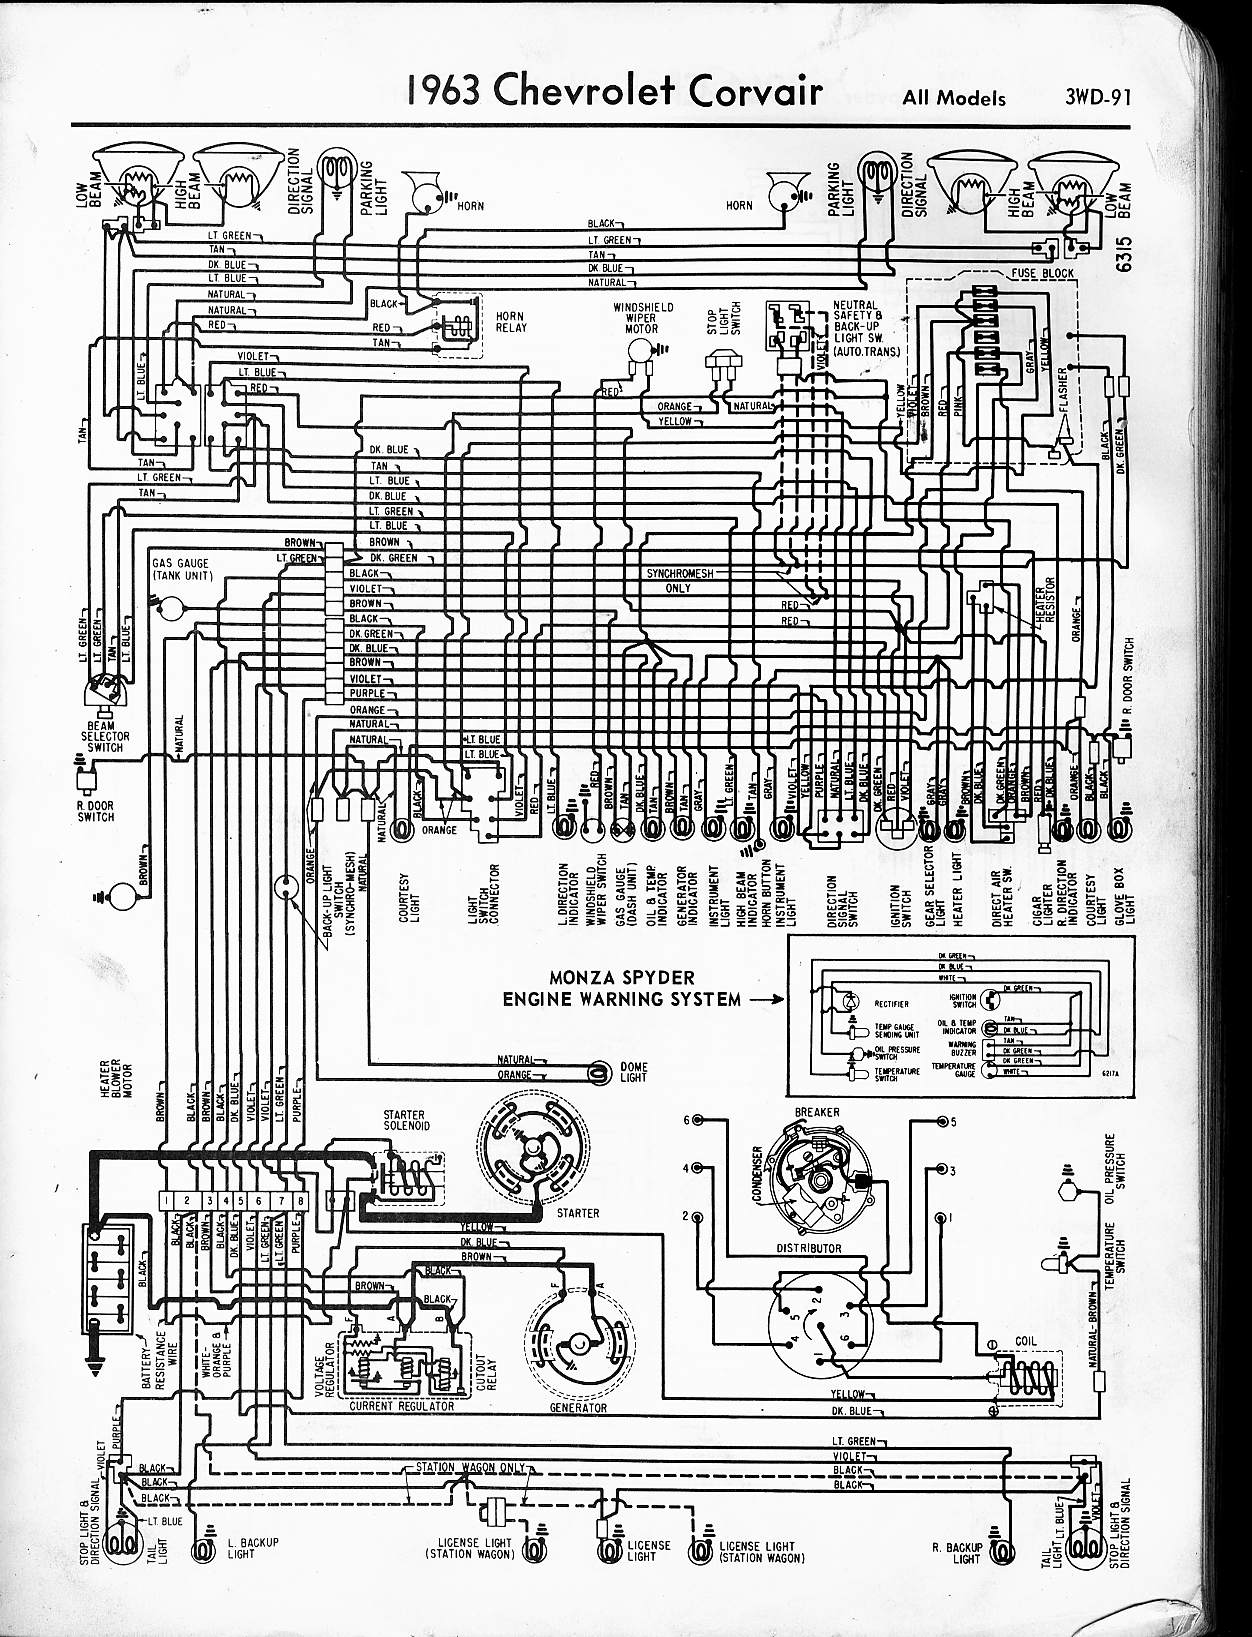 hight resolution of v8 chevy engine starter wiring diagram 1974 wiring library1963 corvair 57 65 chevy wiring diagrams 1963